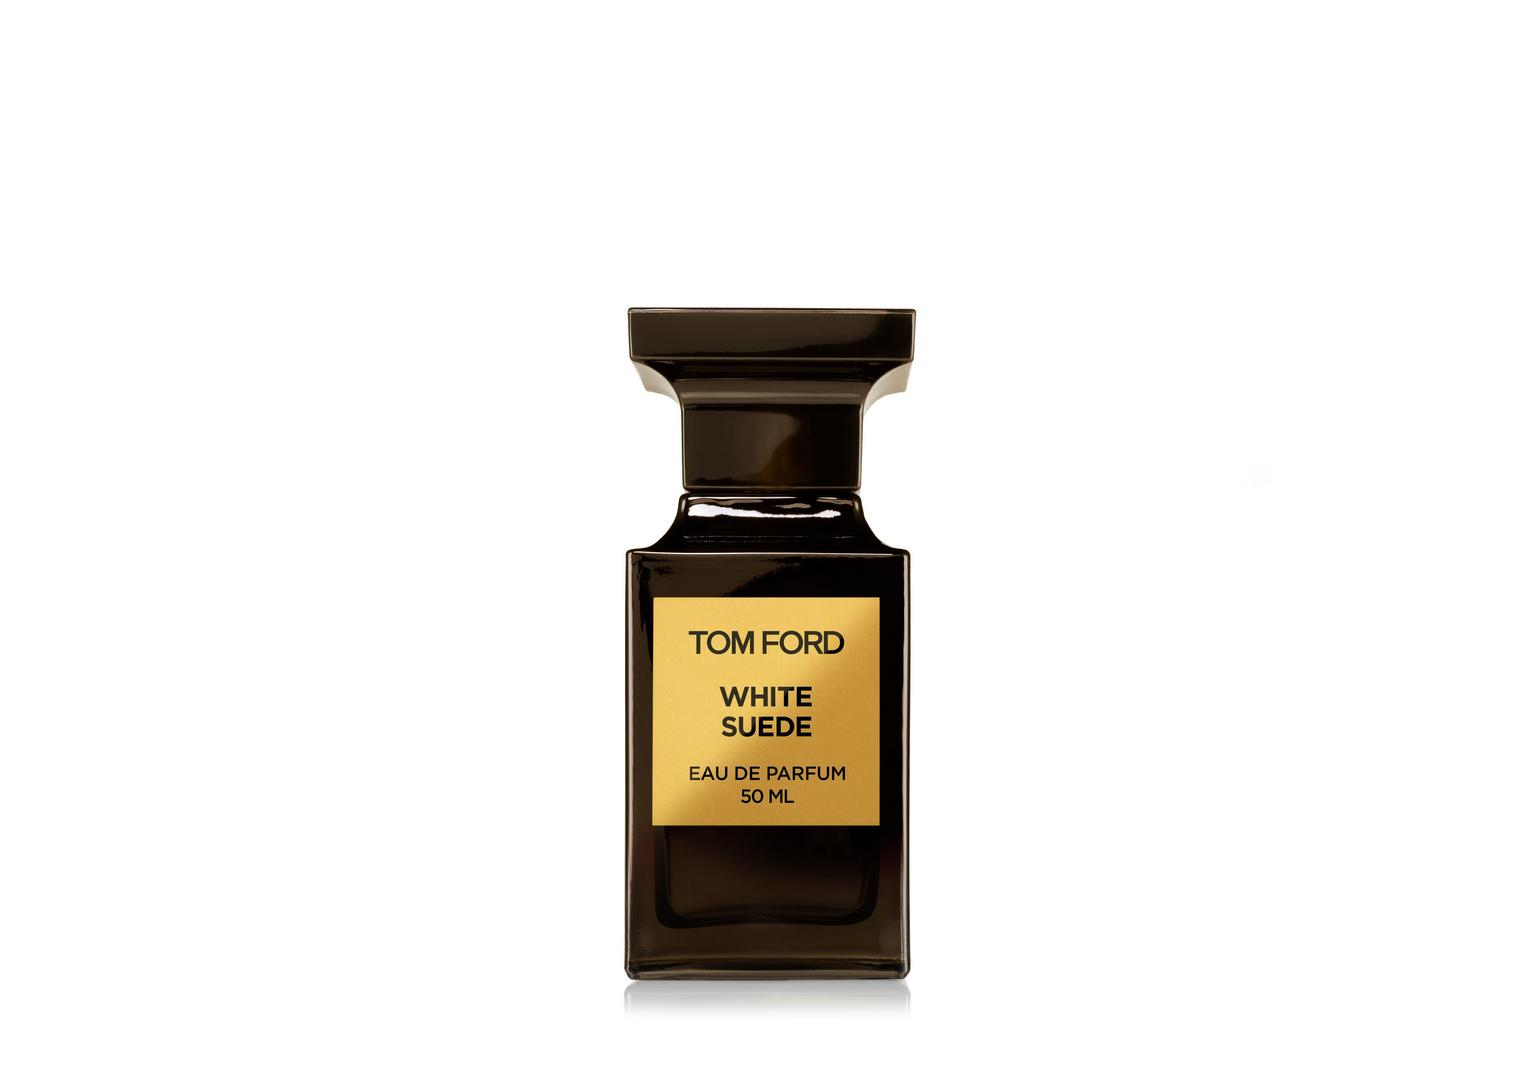 Tom Ford White Suede 50 Ml Fragrance